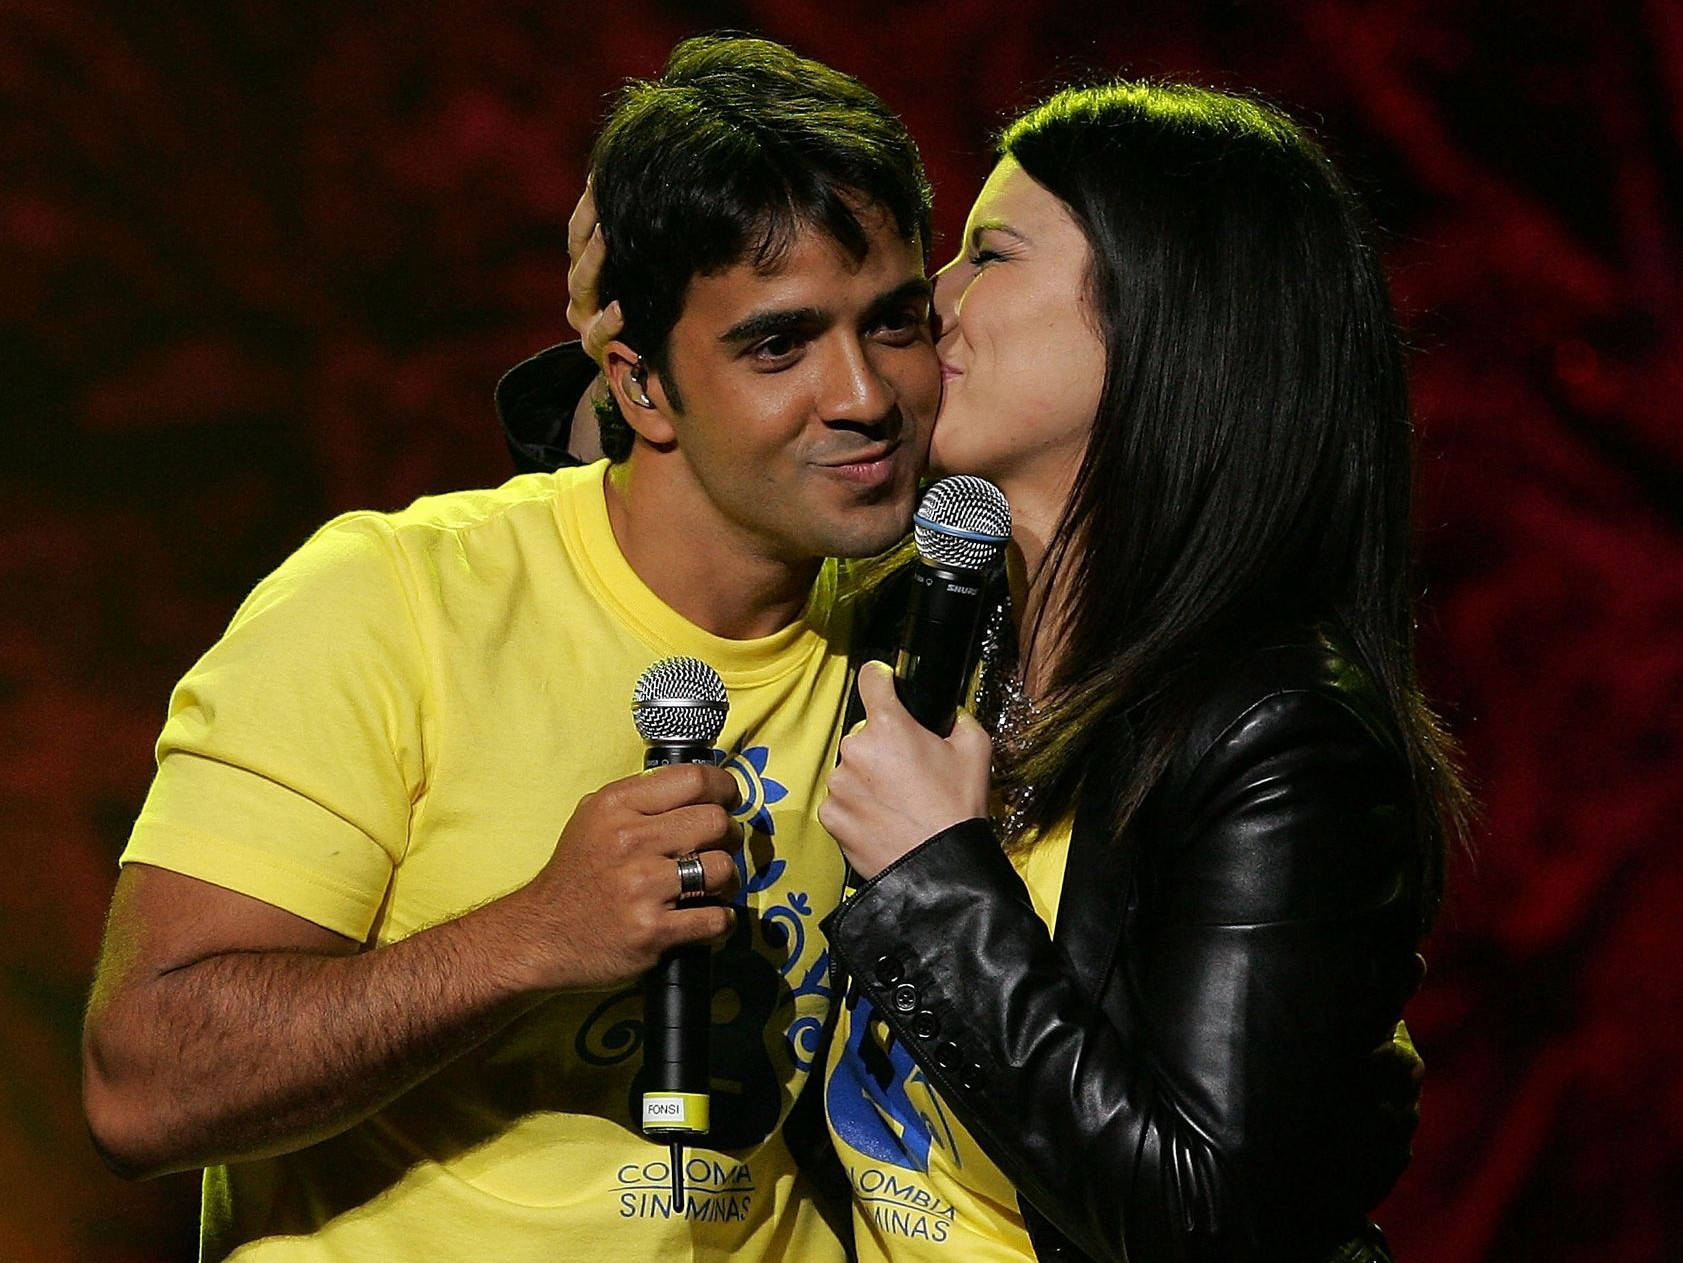 Luis Fonsi and Laura Pausini